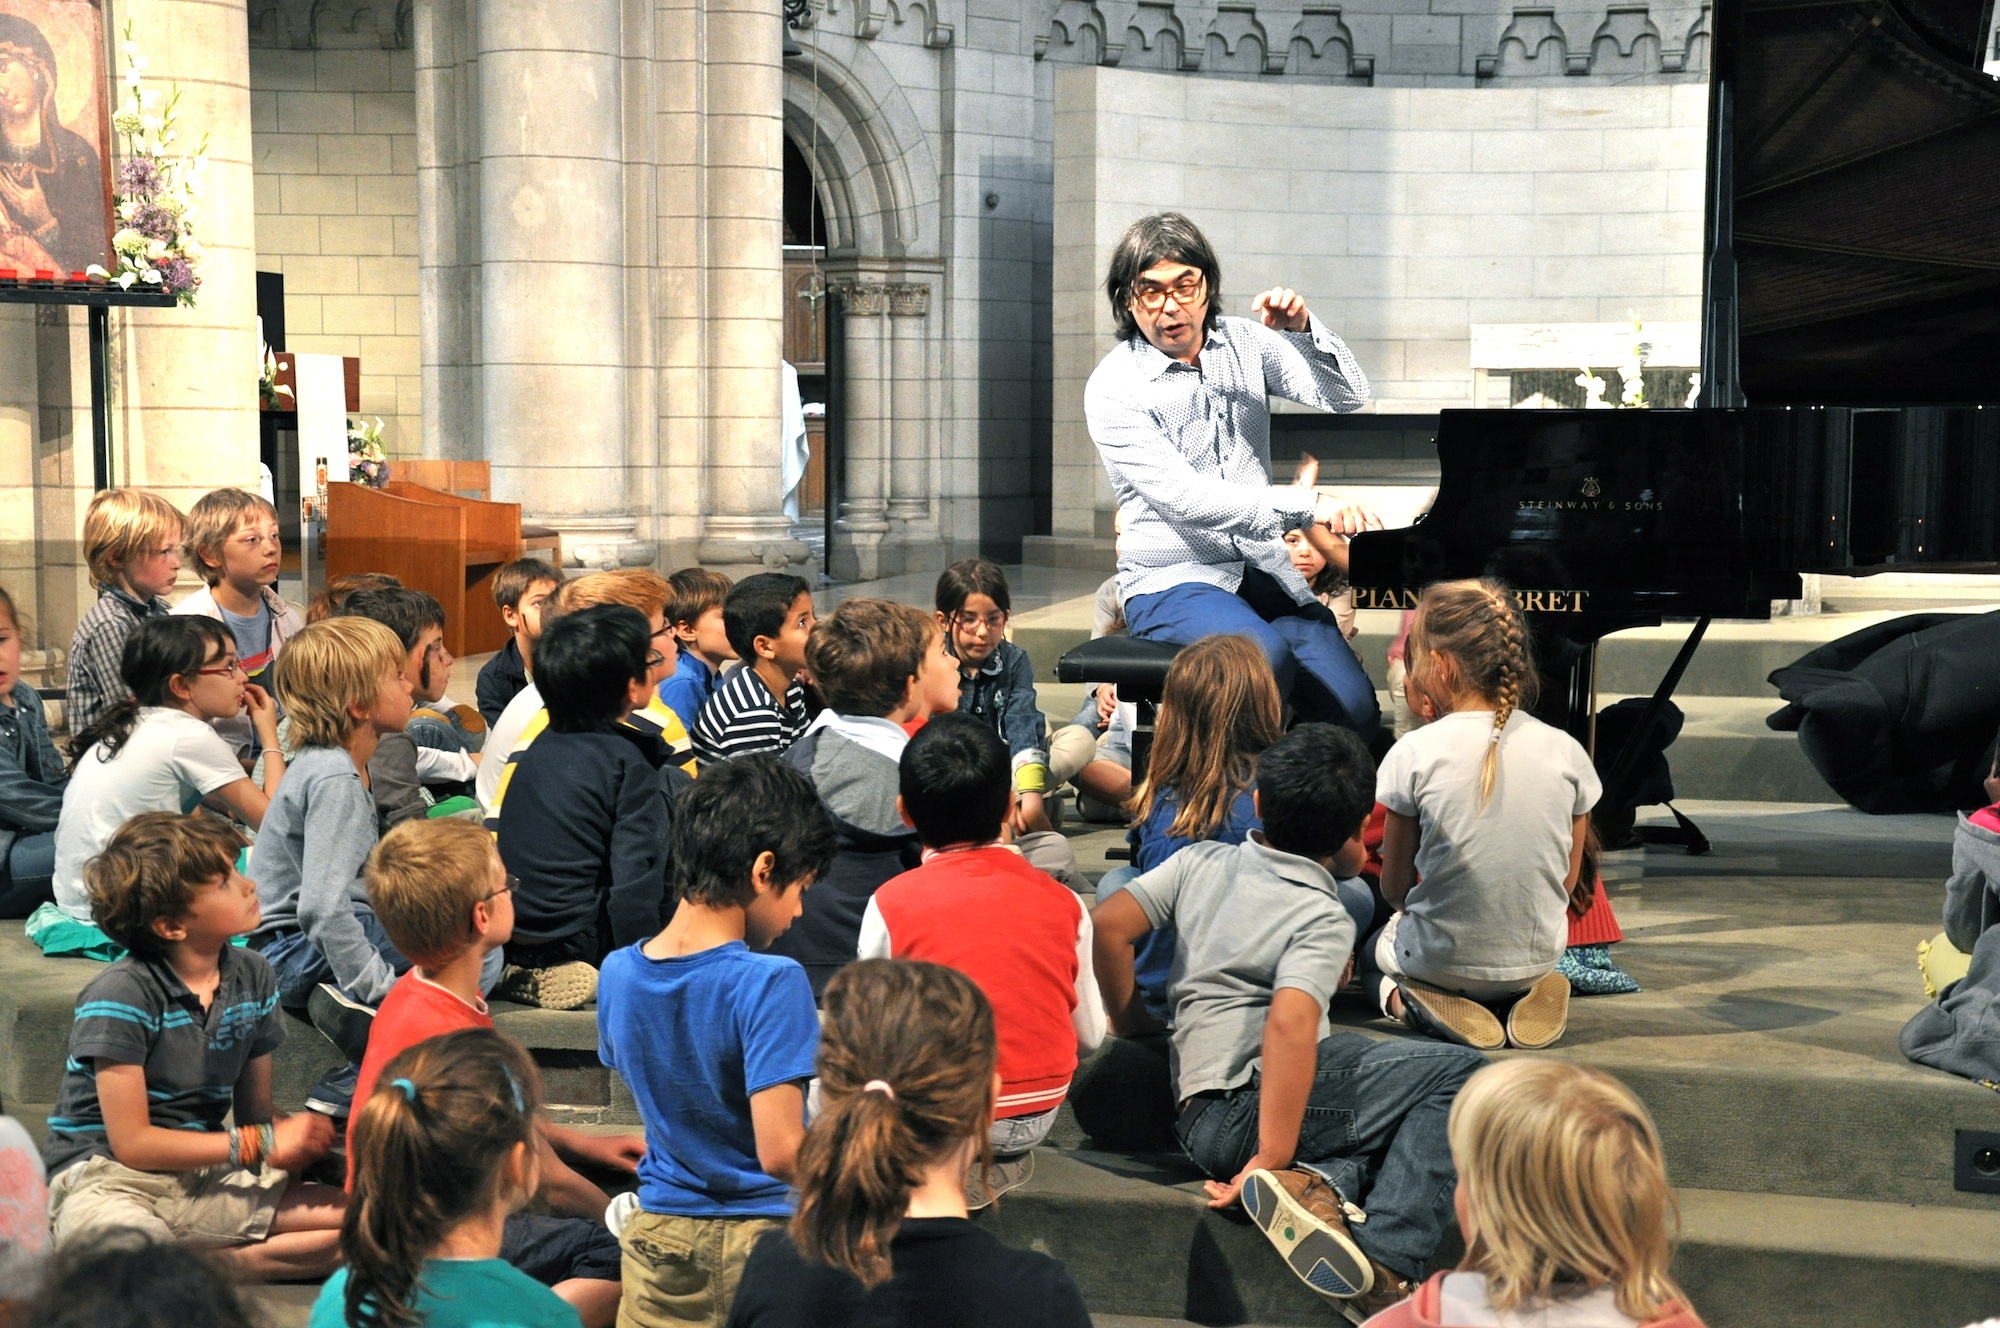 Piano recital, Brussels | June 2014